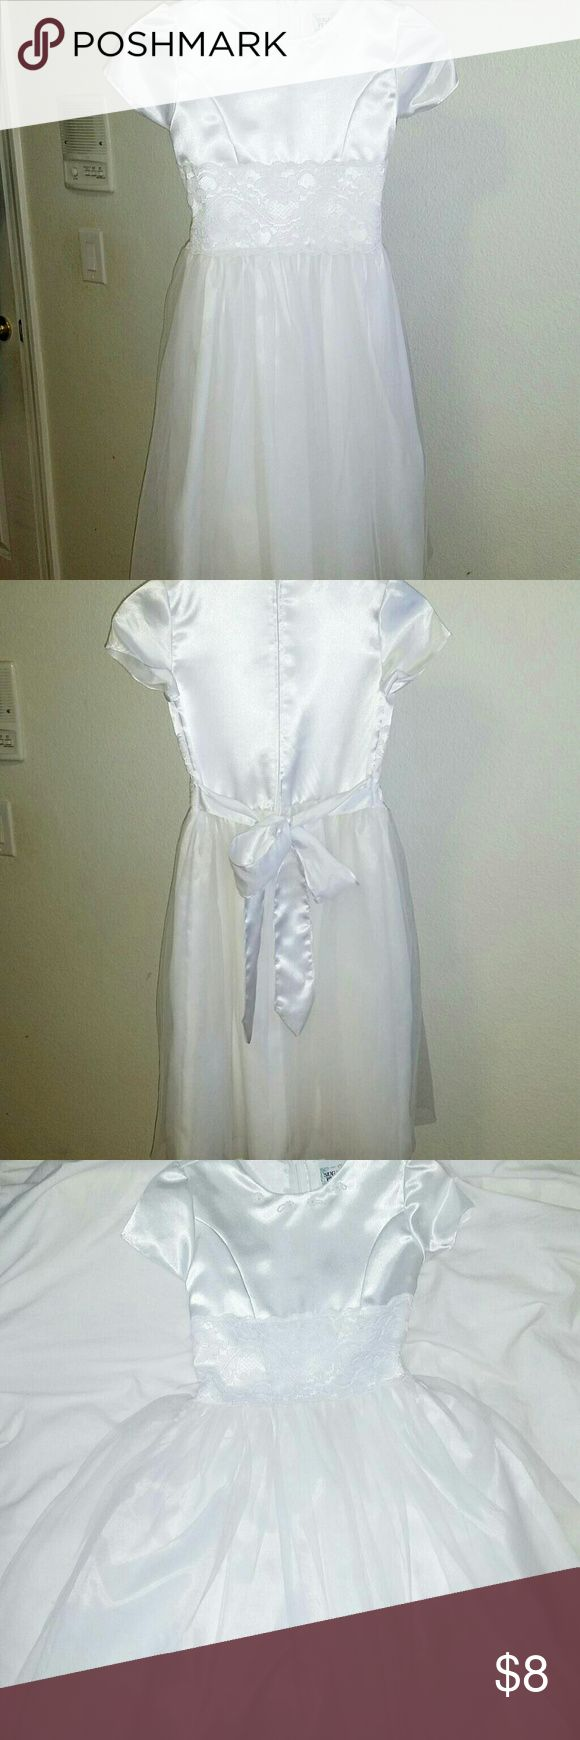 White Children's Dress Size 12 White children's dress size 12. Perfect for pageants, birthdays, weddings, holiday parties, etc. Beautiful lace embroidery. Dresses